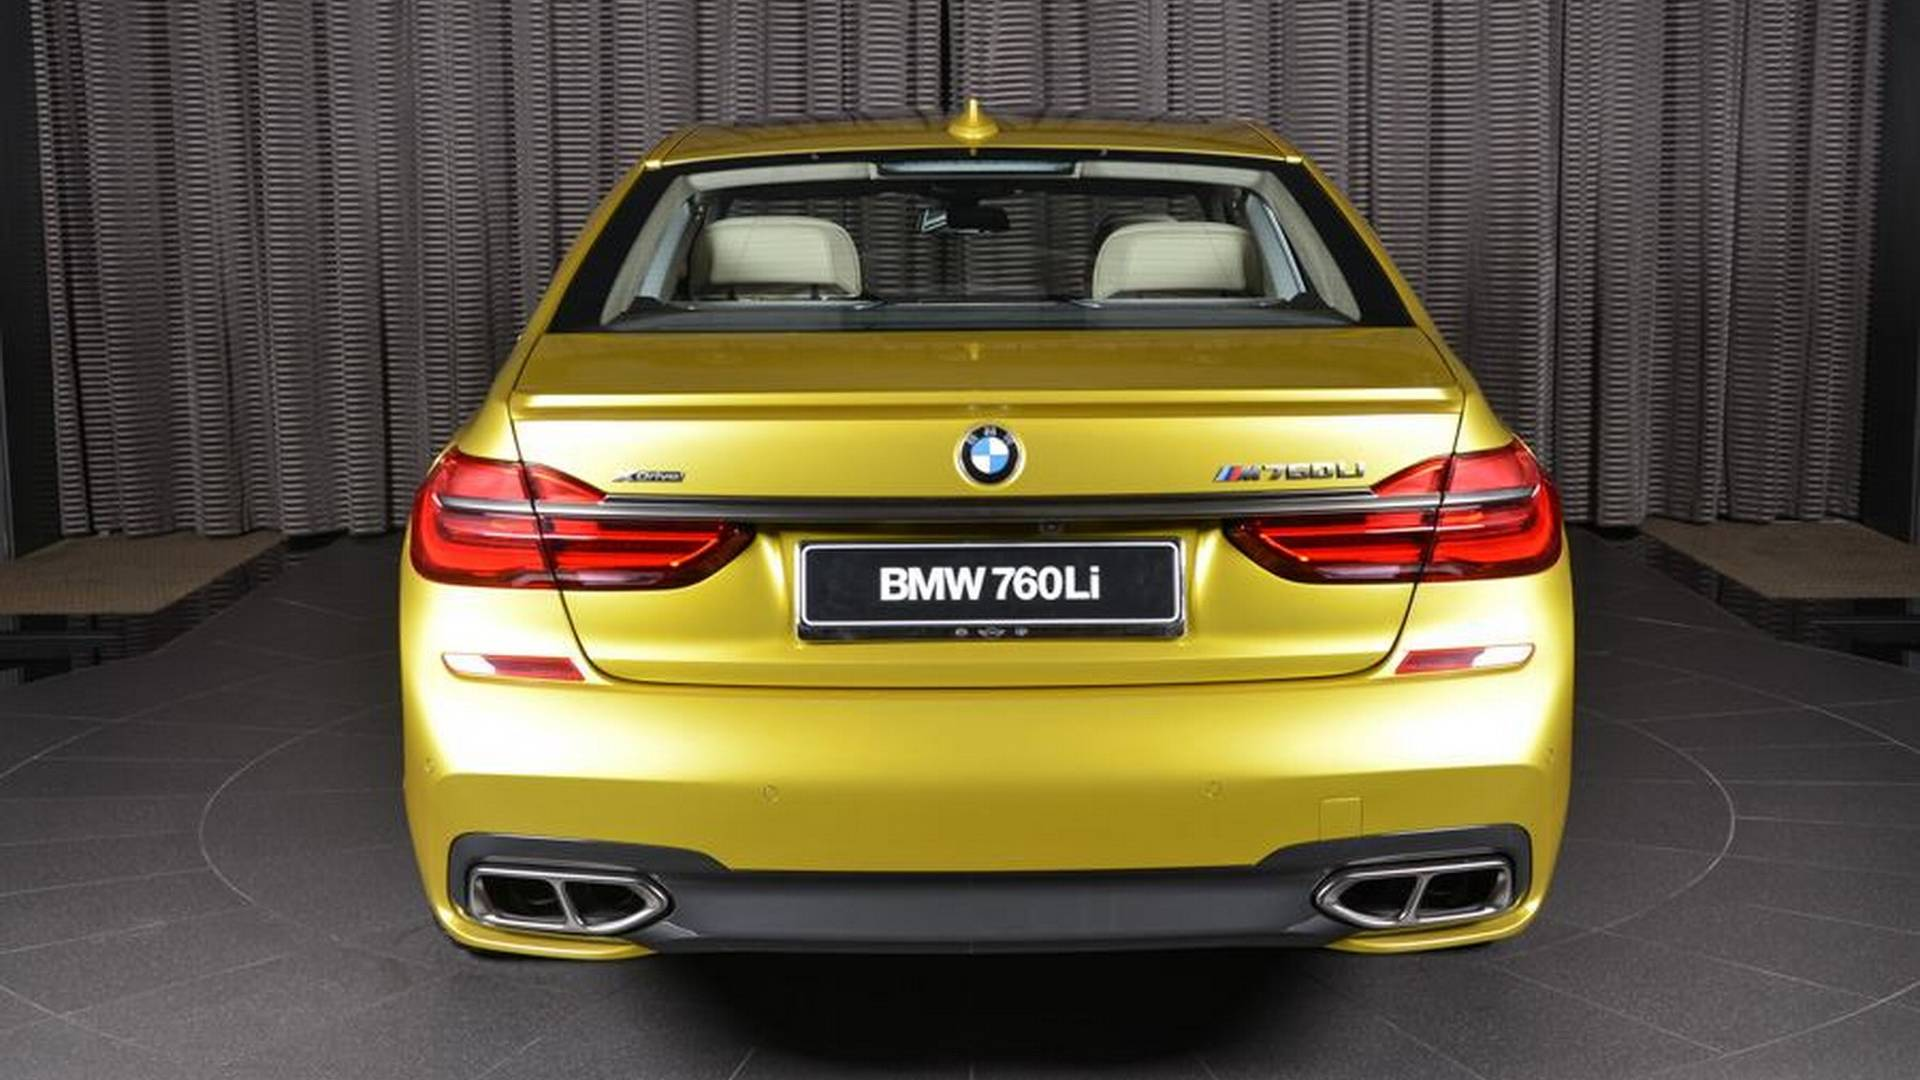 BMW_M60Li_Austin_Yellow_08